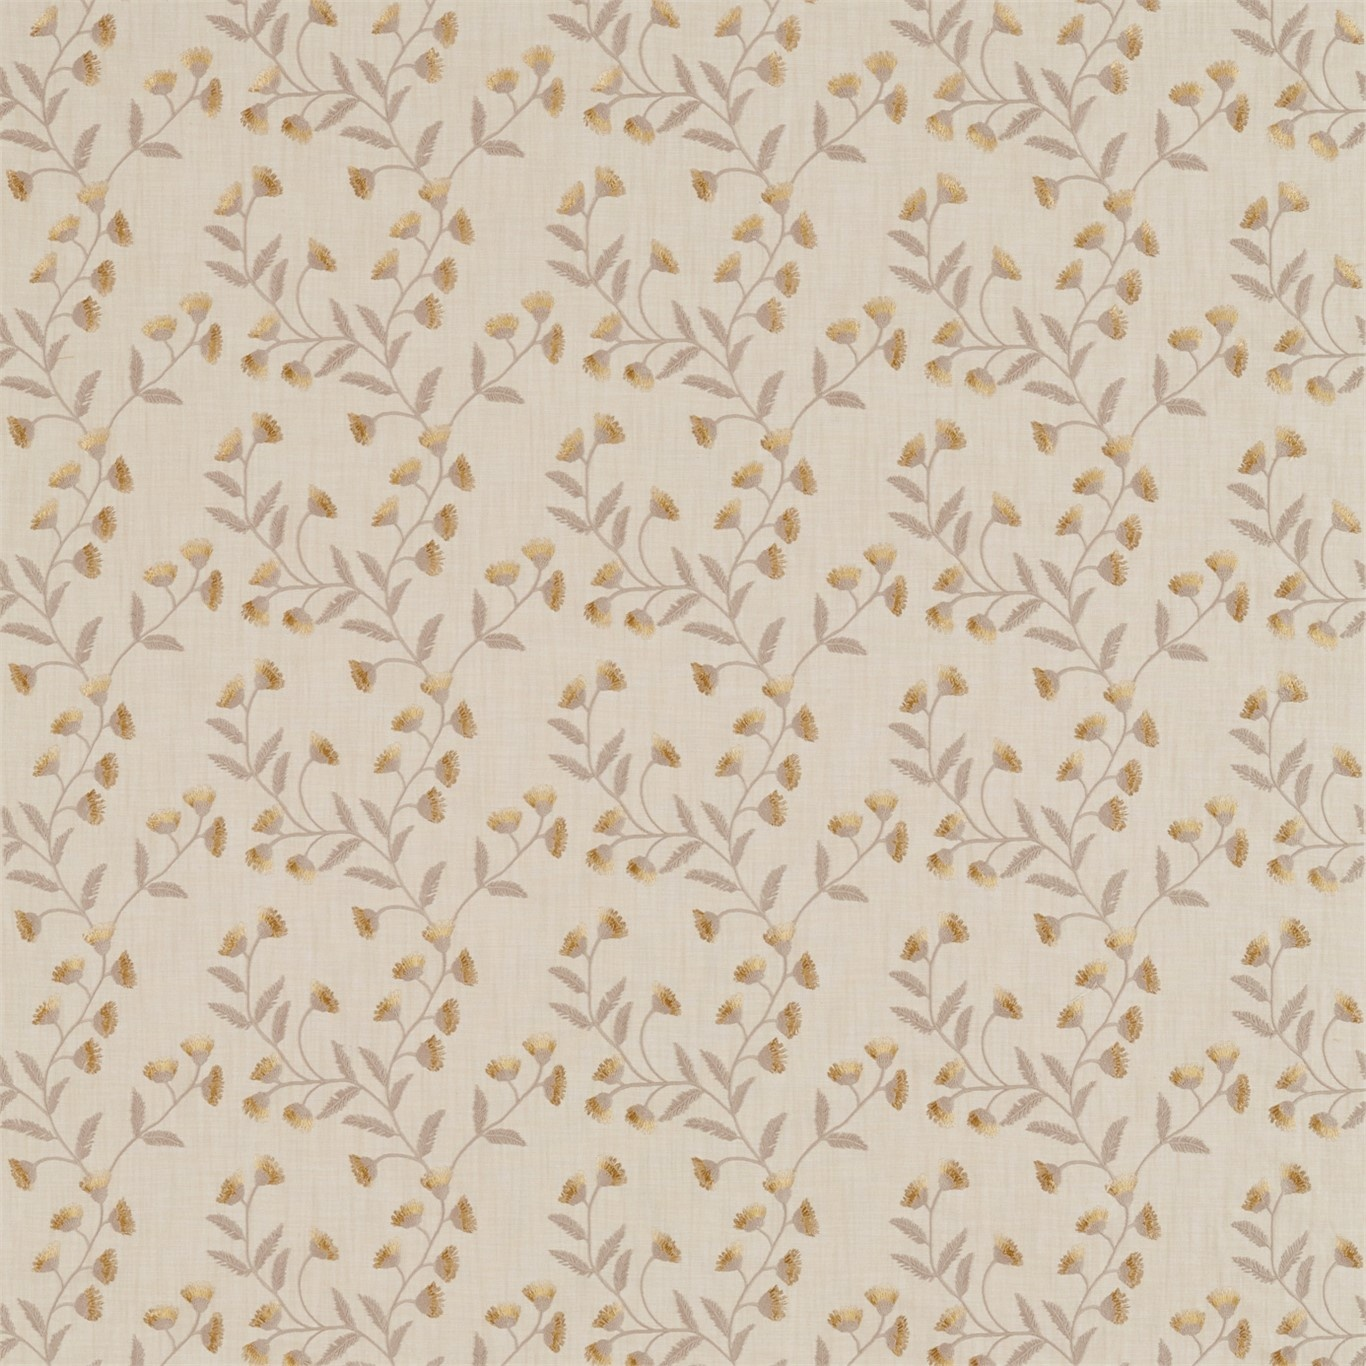 Image of Sanderson Home Everly Barley Fabric 236420